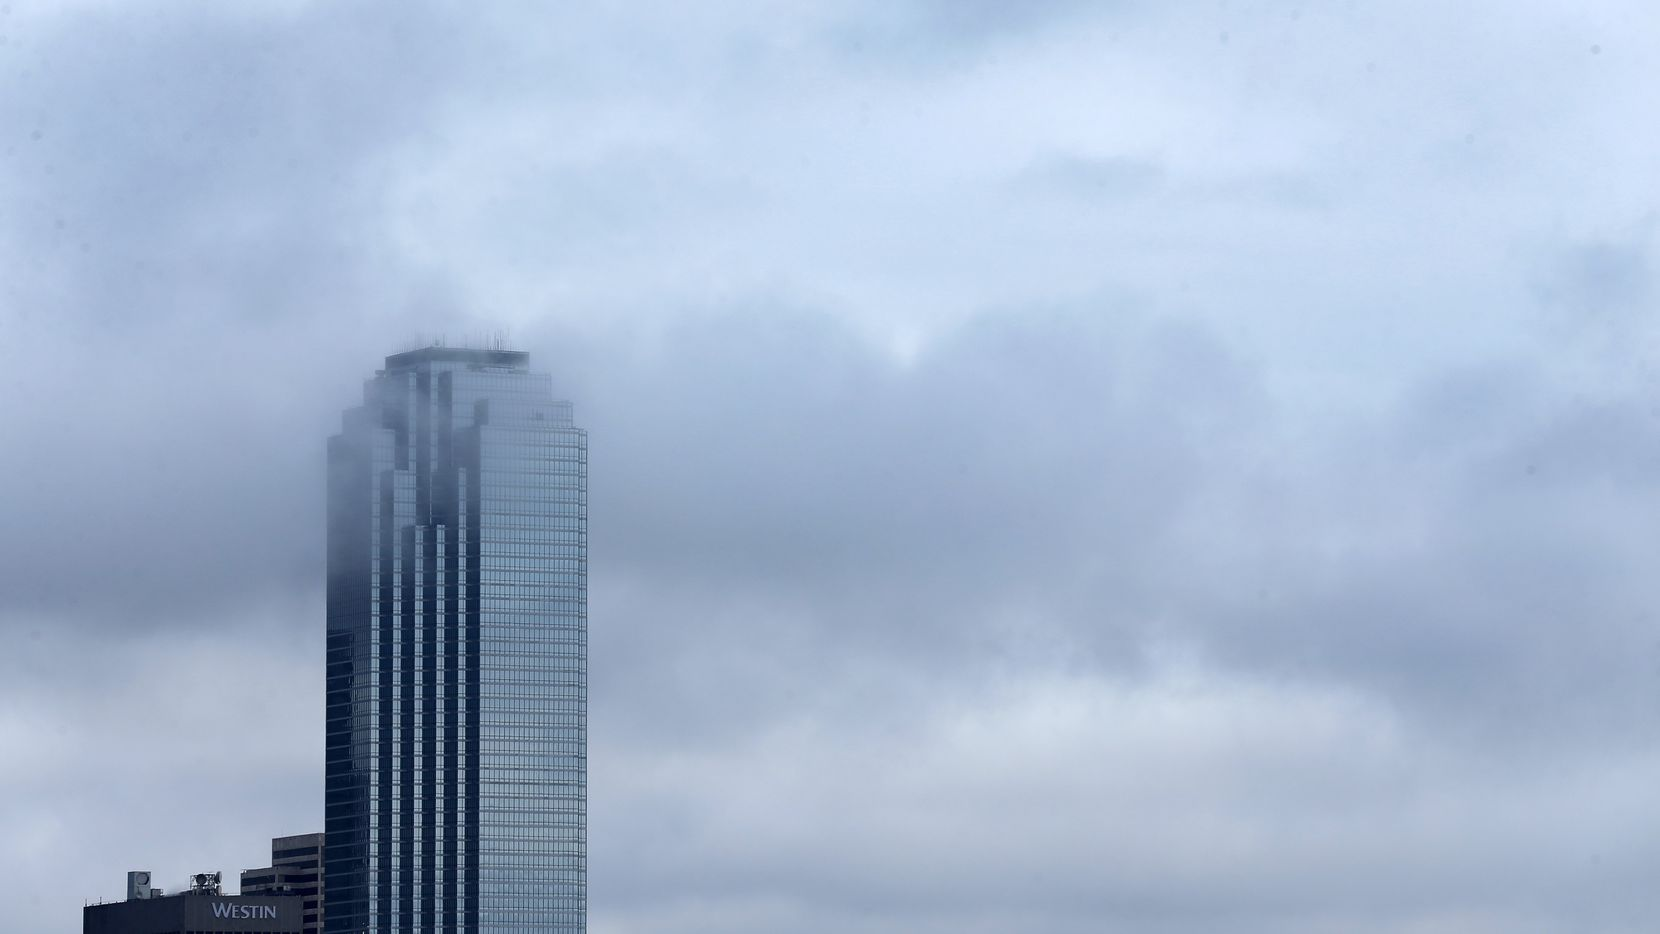 Lingering clouds drifted through the Bank of America building in downtown Dallas as a cold front ushered out the rain on Feb. 24, 2018.